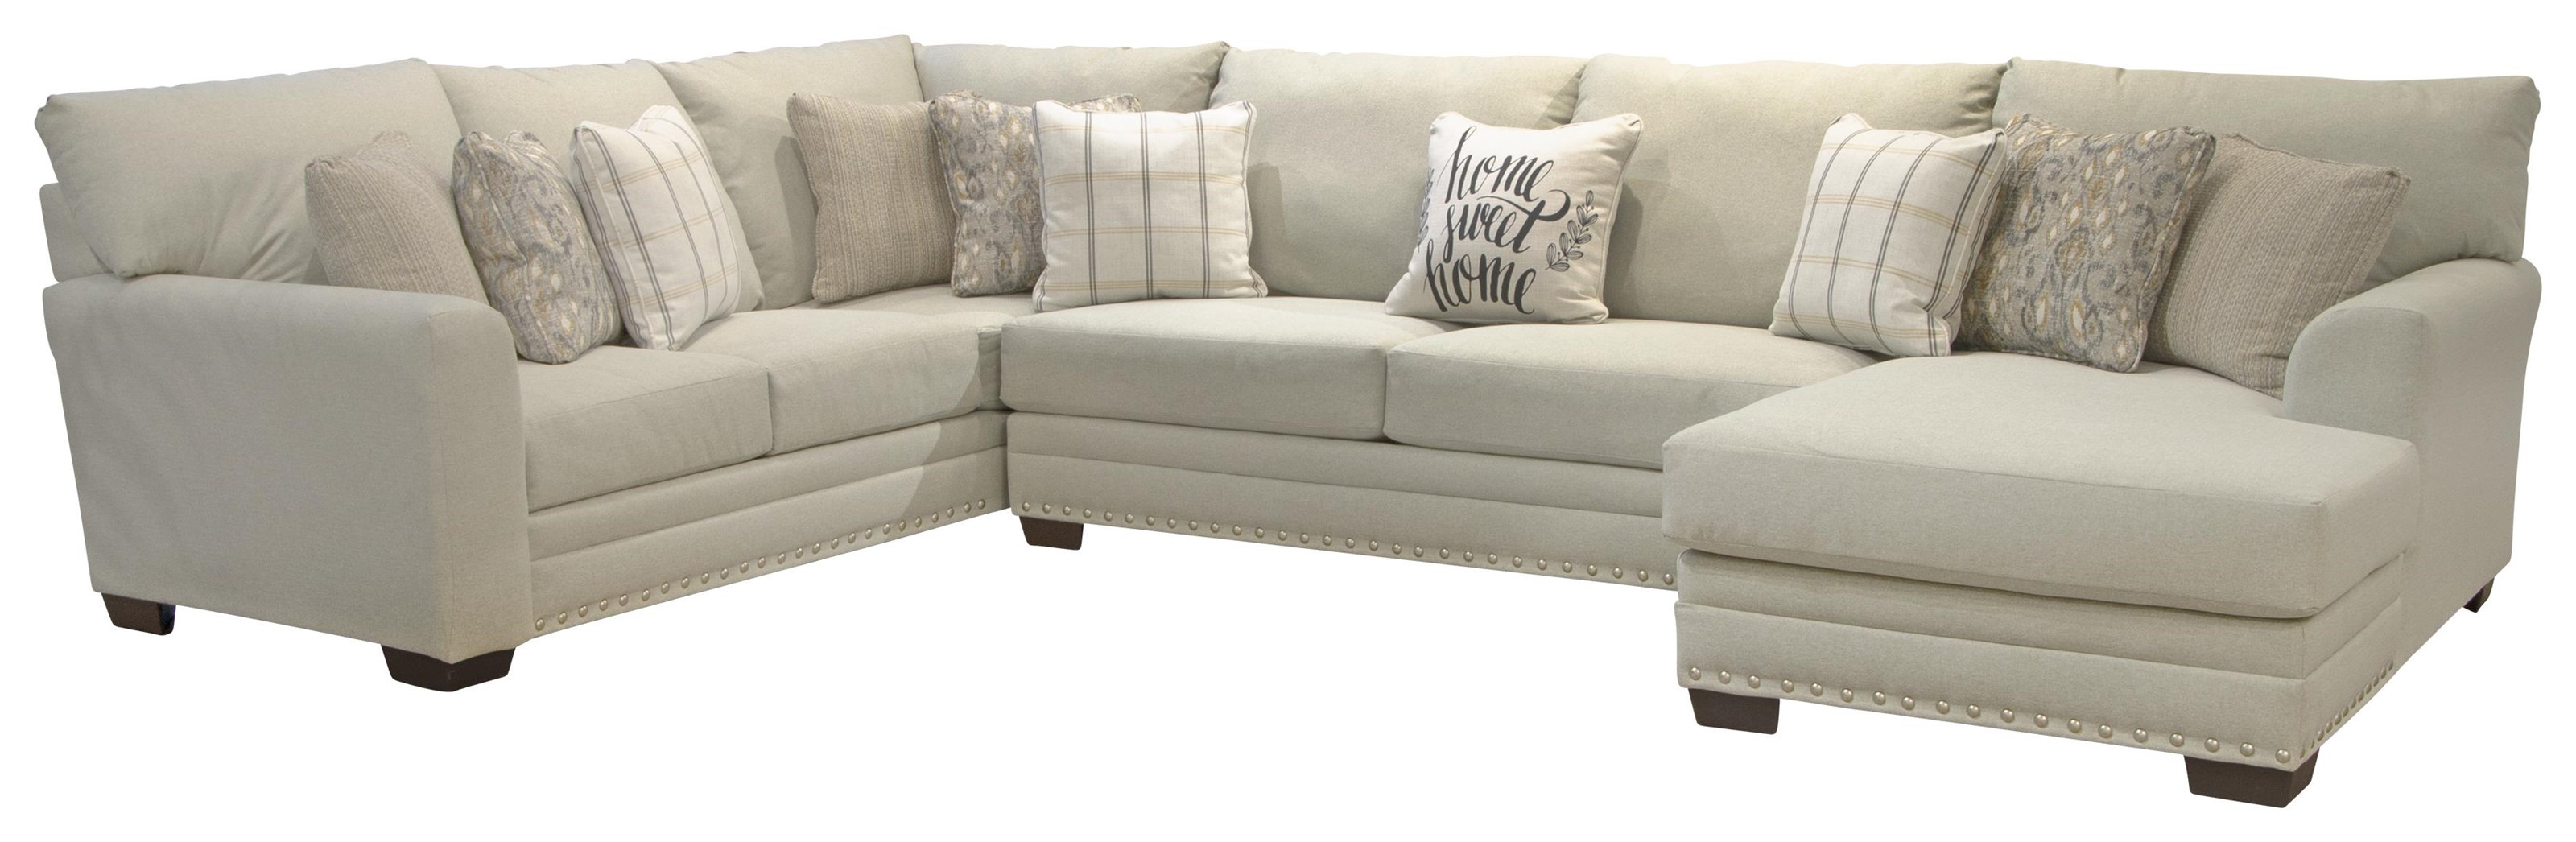 Middleton 3-Piece Sectional w/ Chaise by Jackson Furniture at Z & R Furniture